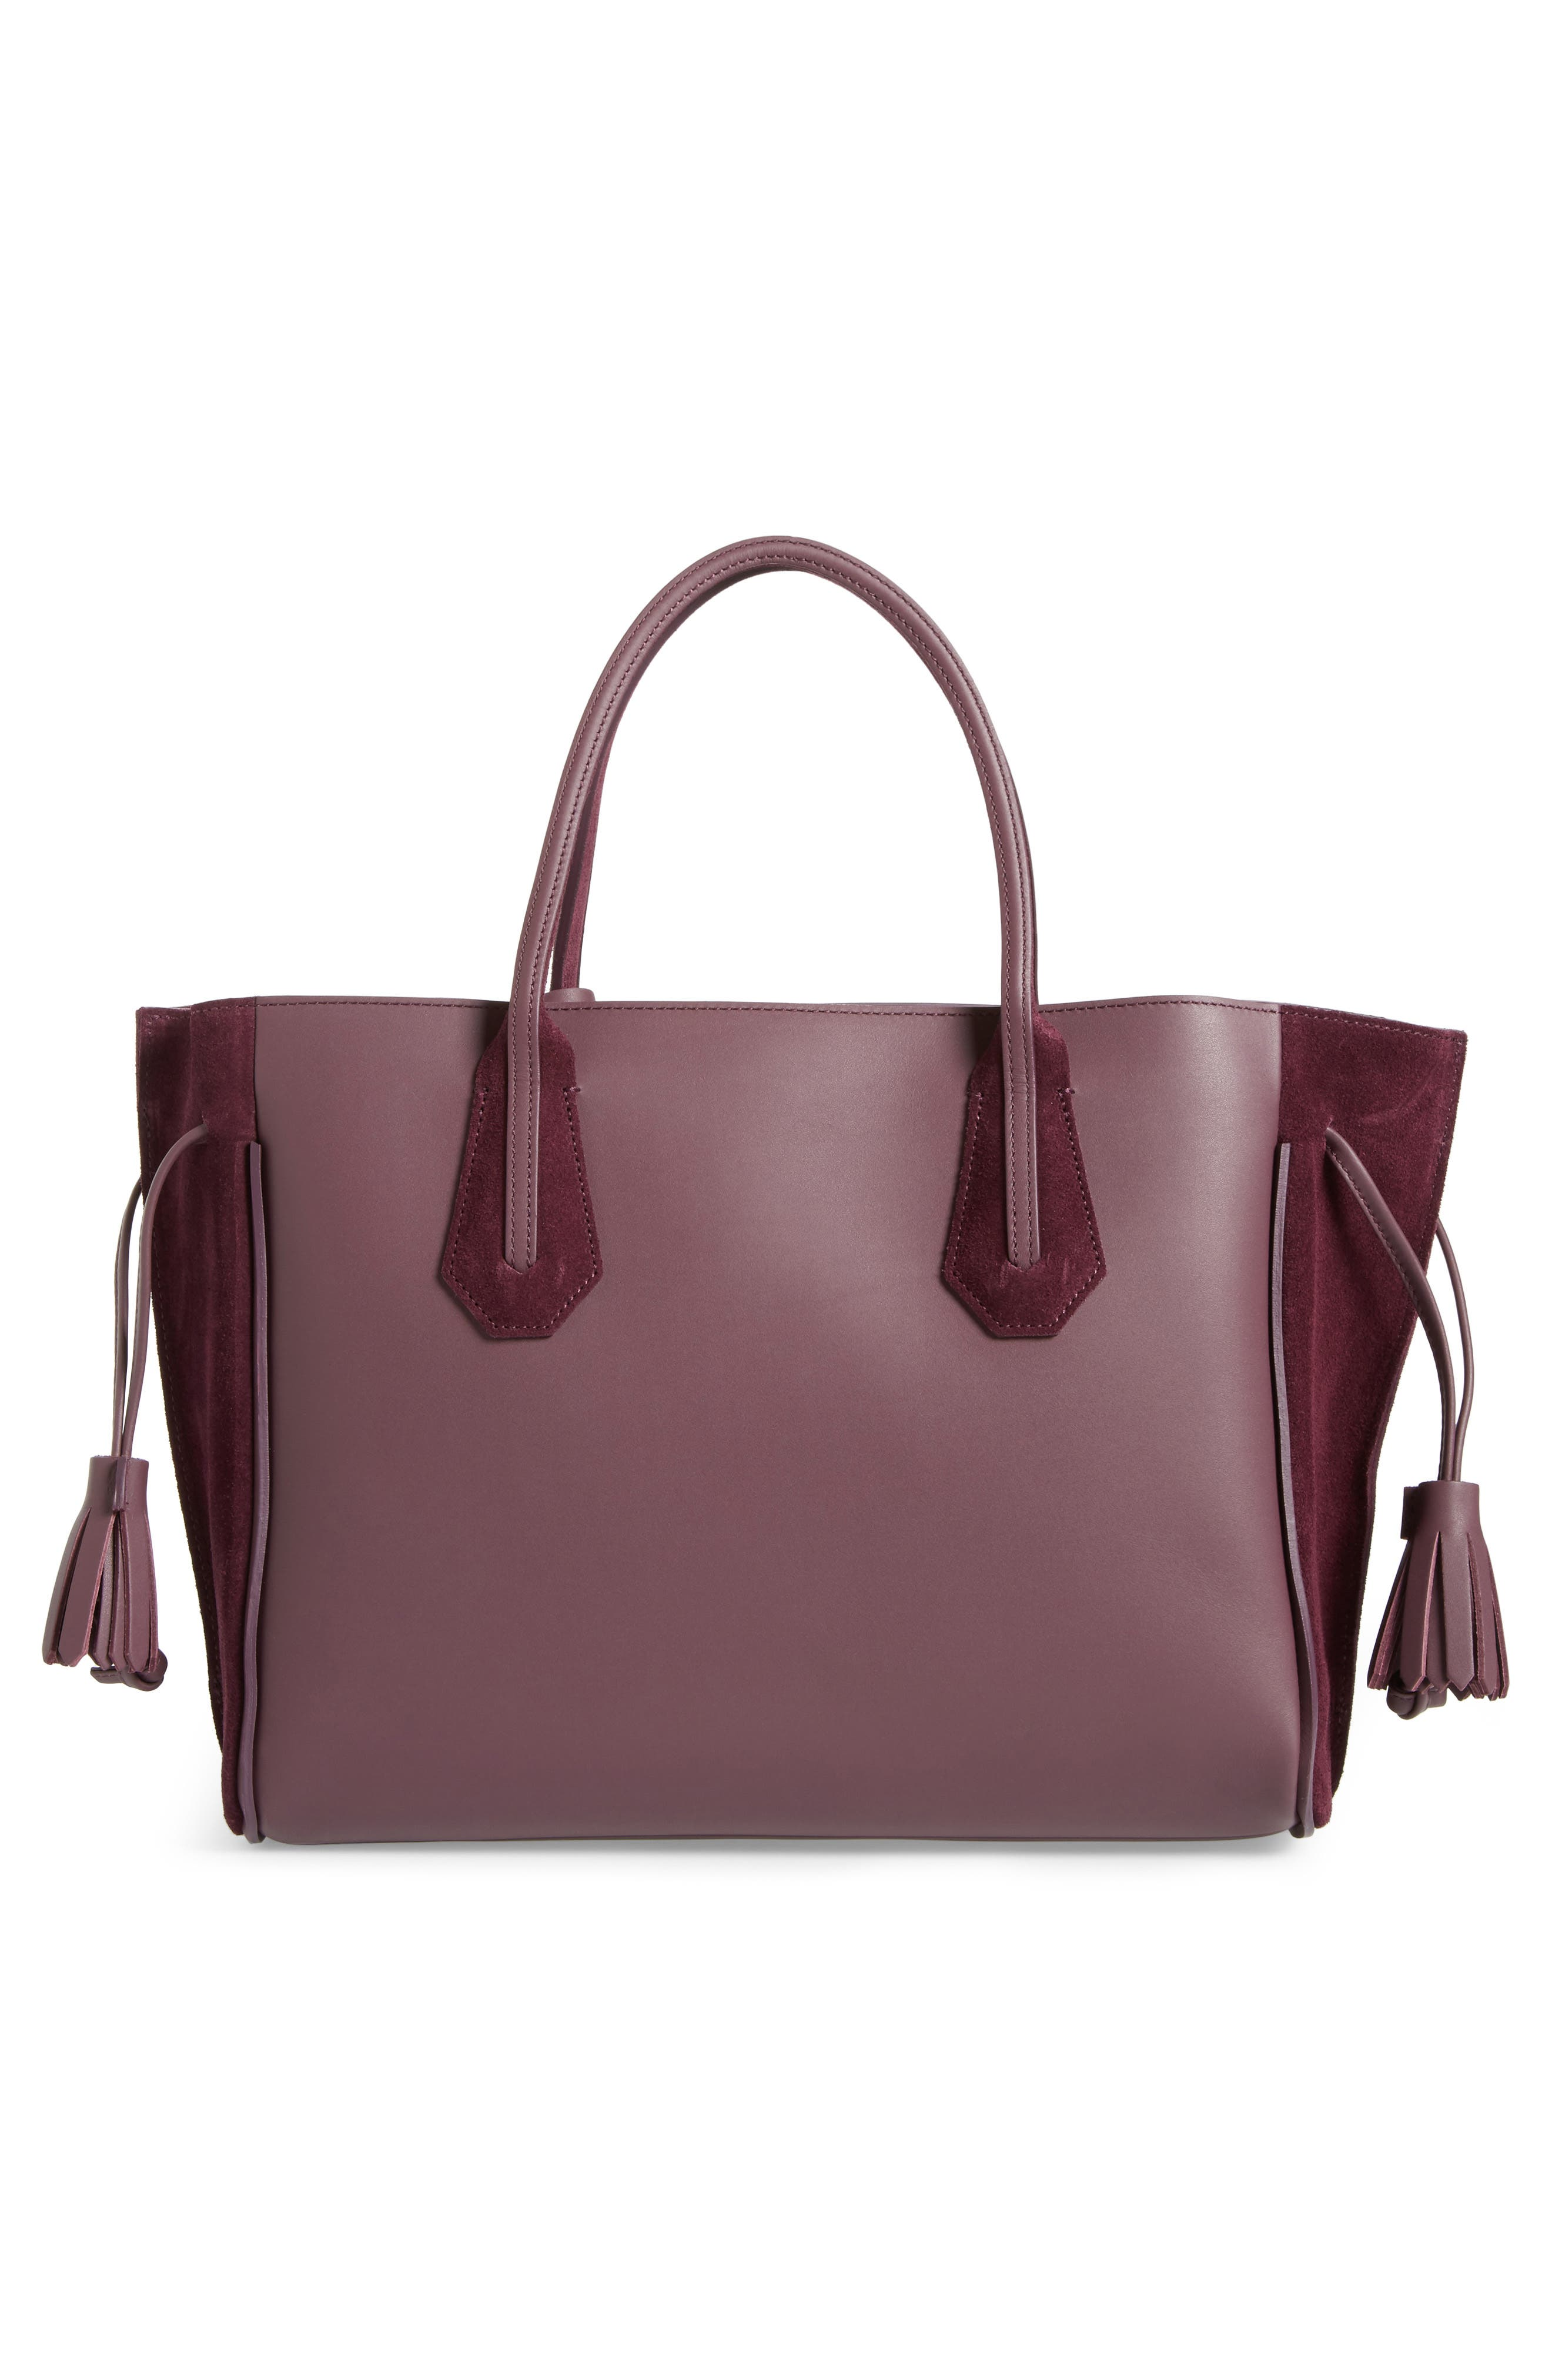 Penelope Leather & Suede Top Handle Tote,                             Alternate thumbnail 3, color,                             500